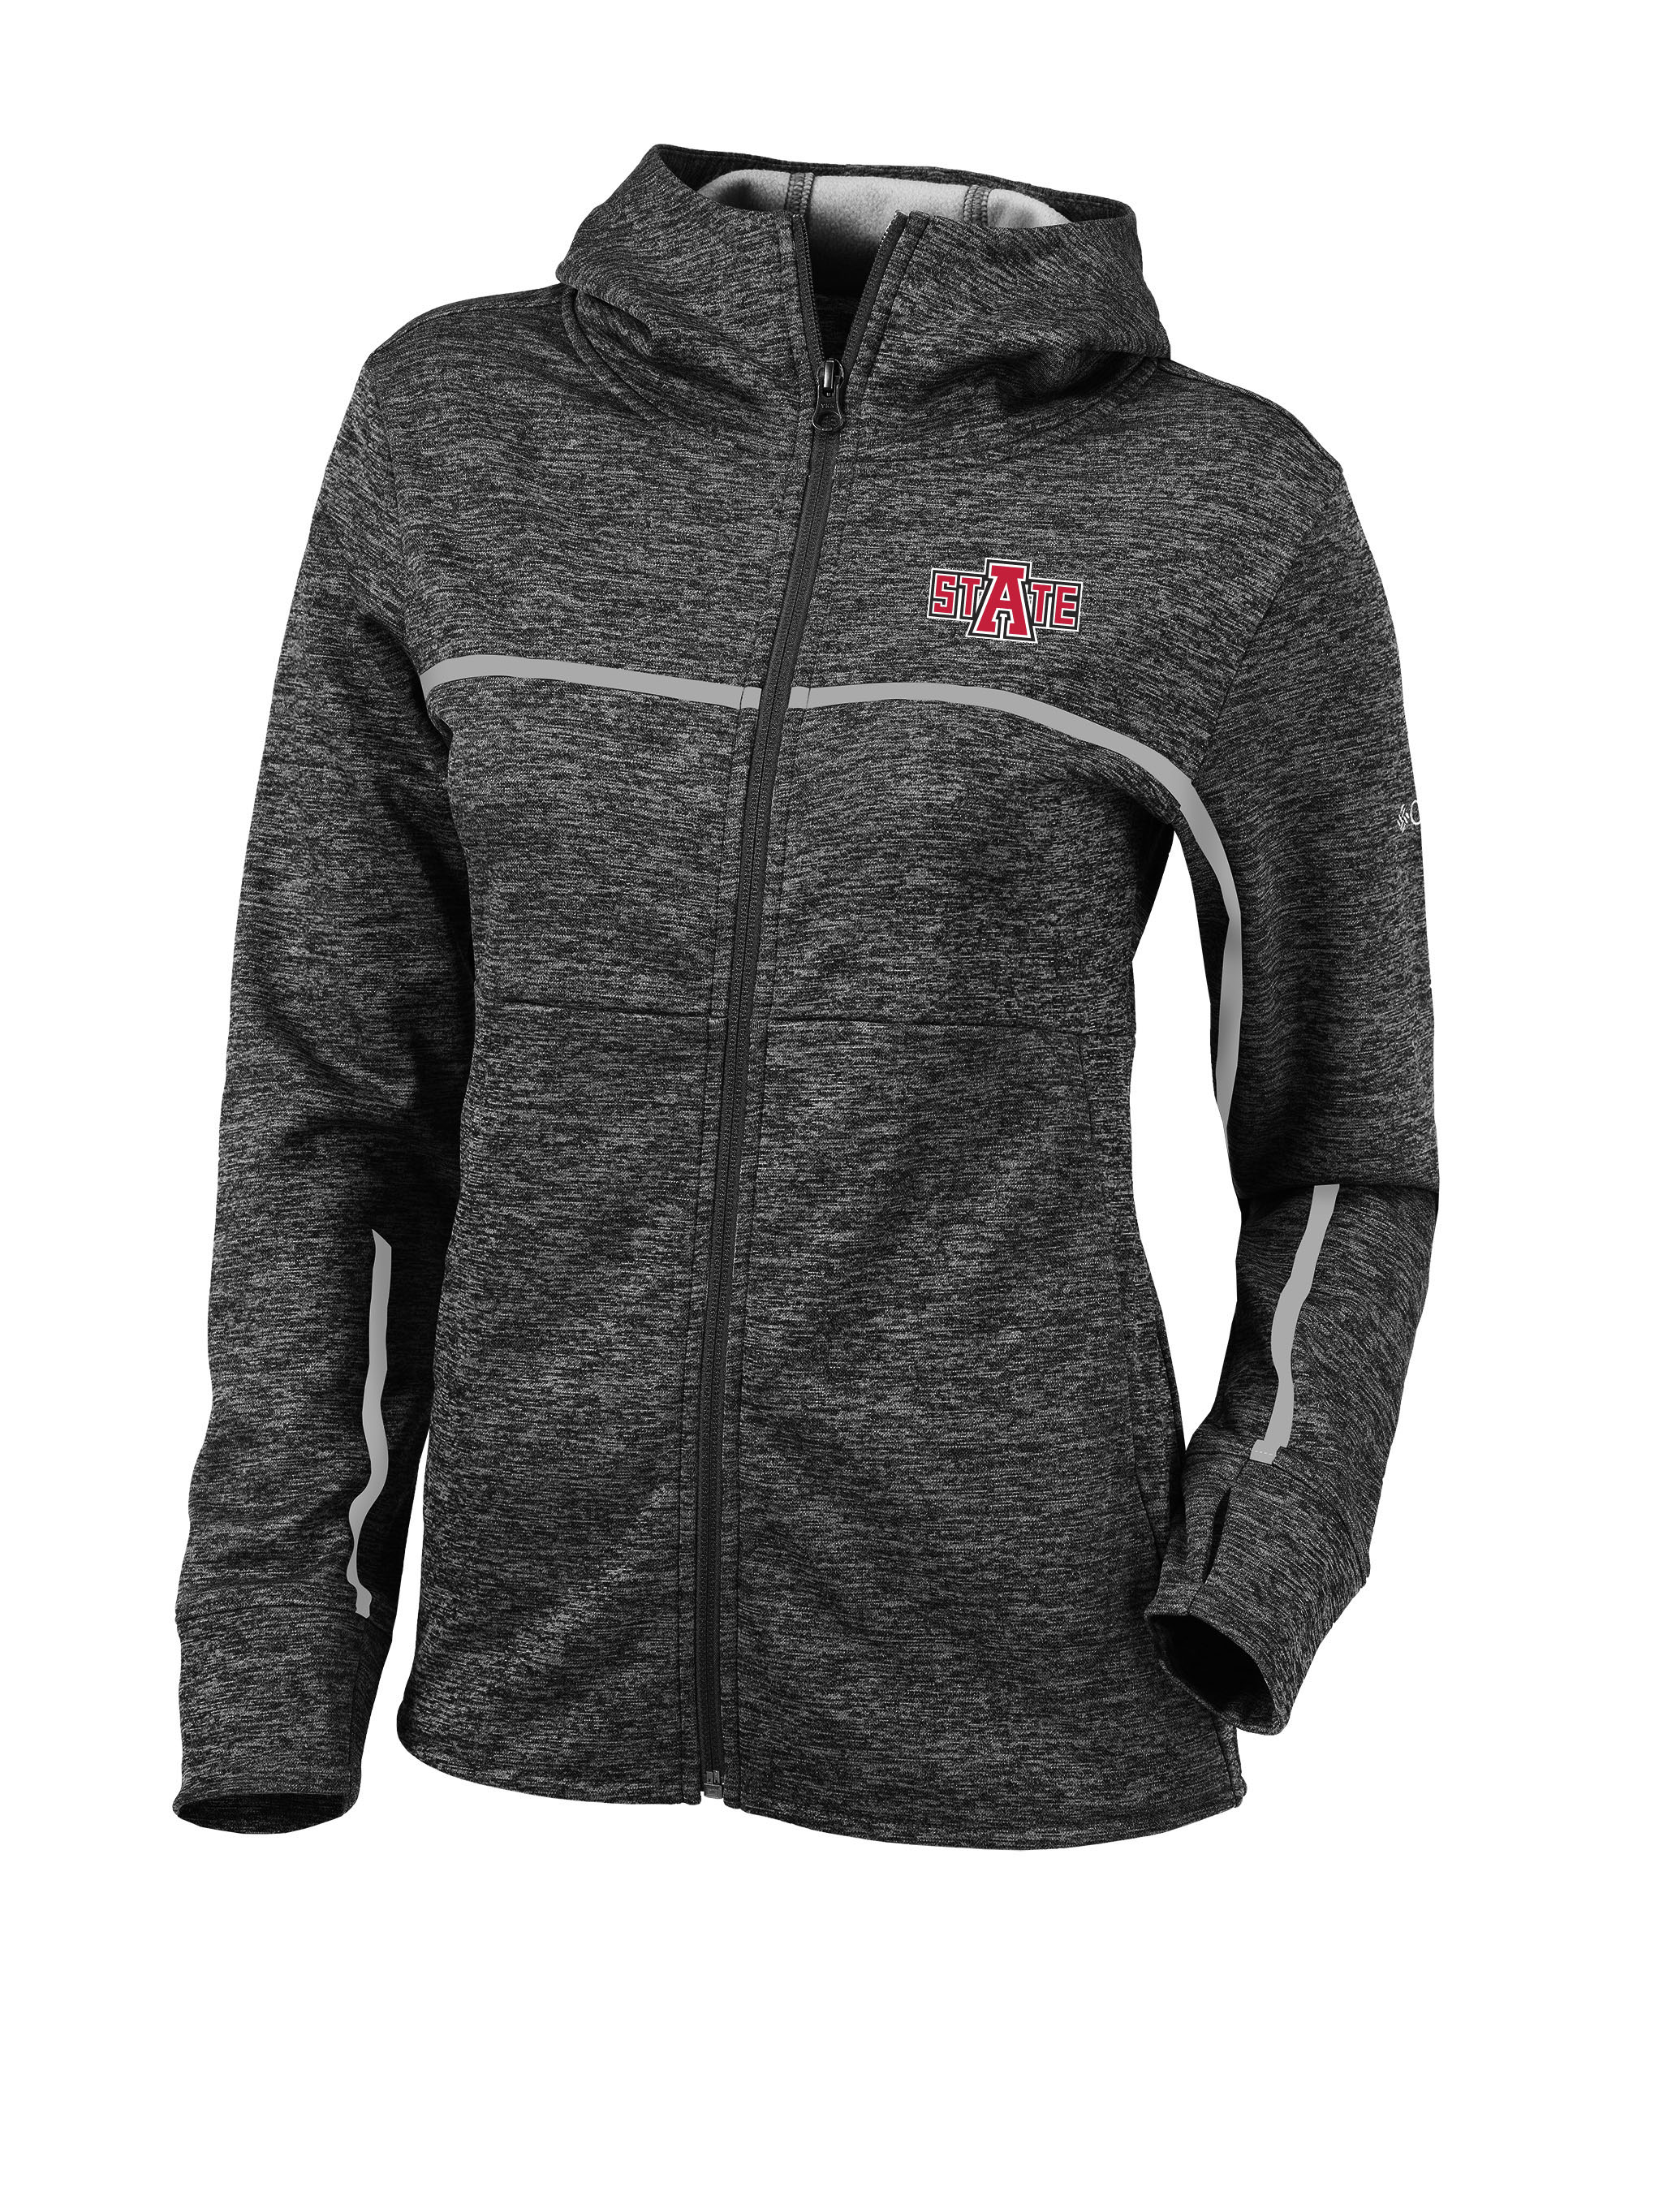 Arkansas State Omni-Wick Fresh Full Zip Jacket